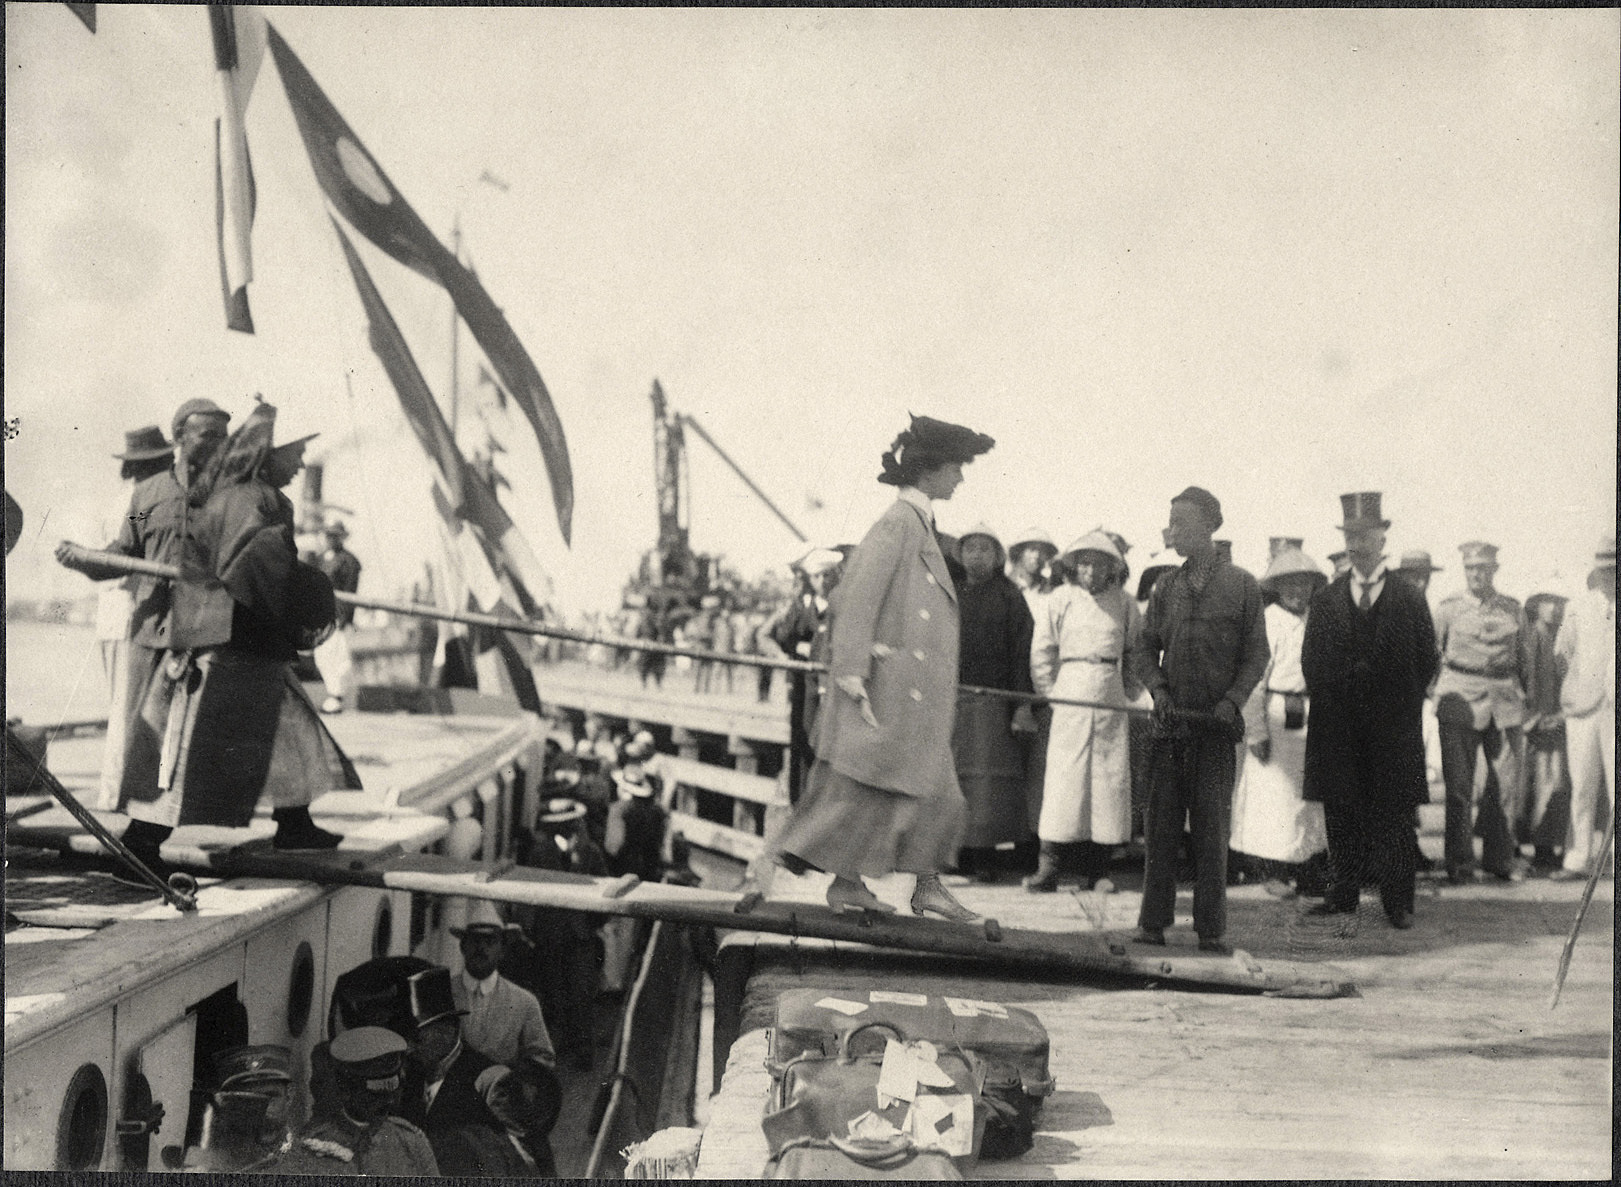 Tianjin: Alice Roosevelt disembarking at the port of Tianjin